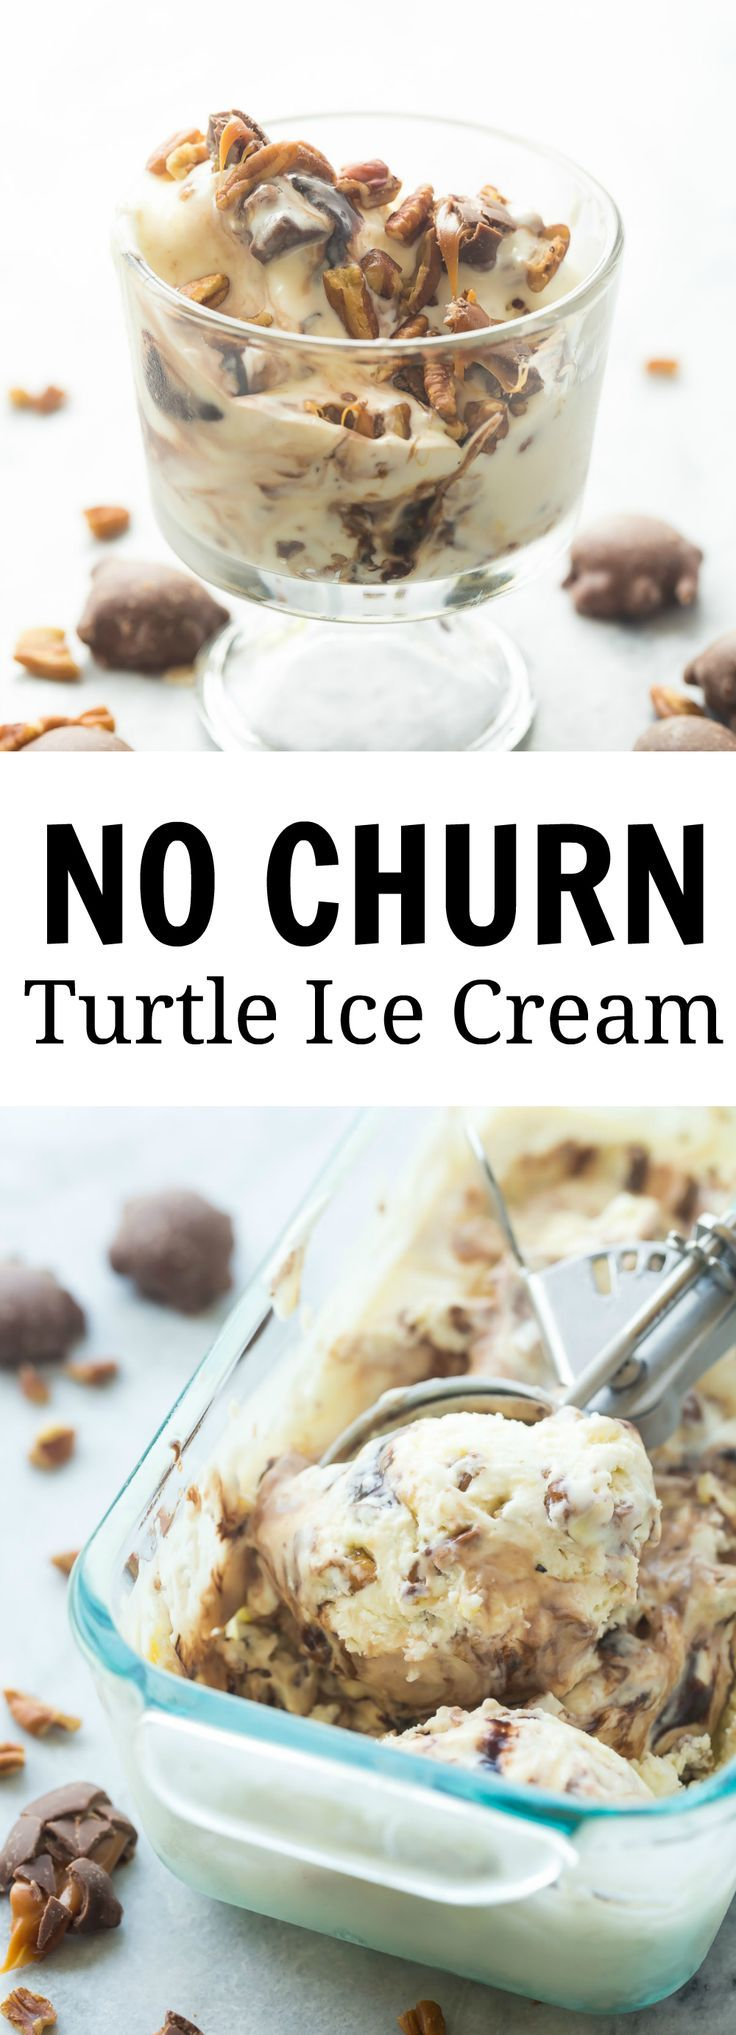 The EASIEST ice cream! No Churn Turtle Ice Cream made with chocolate sauce, caramel sauce, chopped pecans and chopped Turtles! http://www.thereciperebel.com/no-churn-turtle-ice-cream/